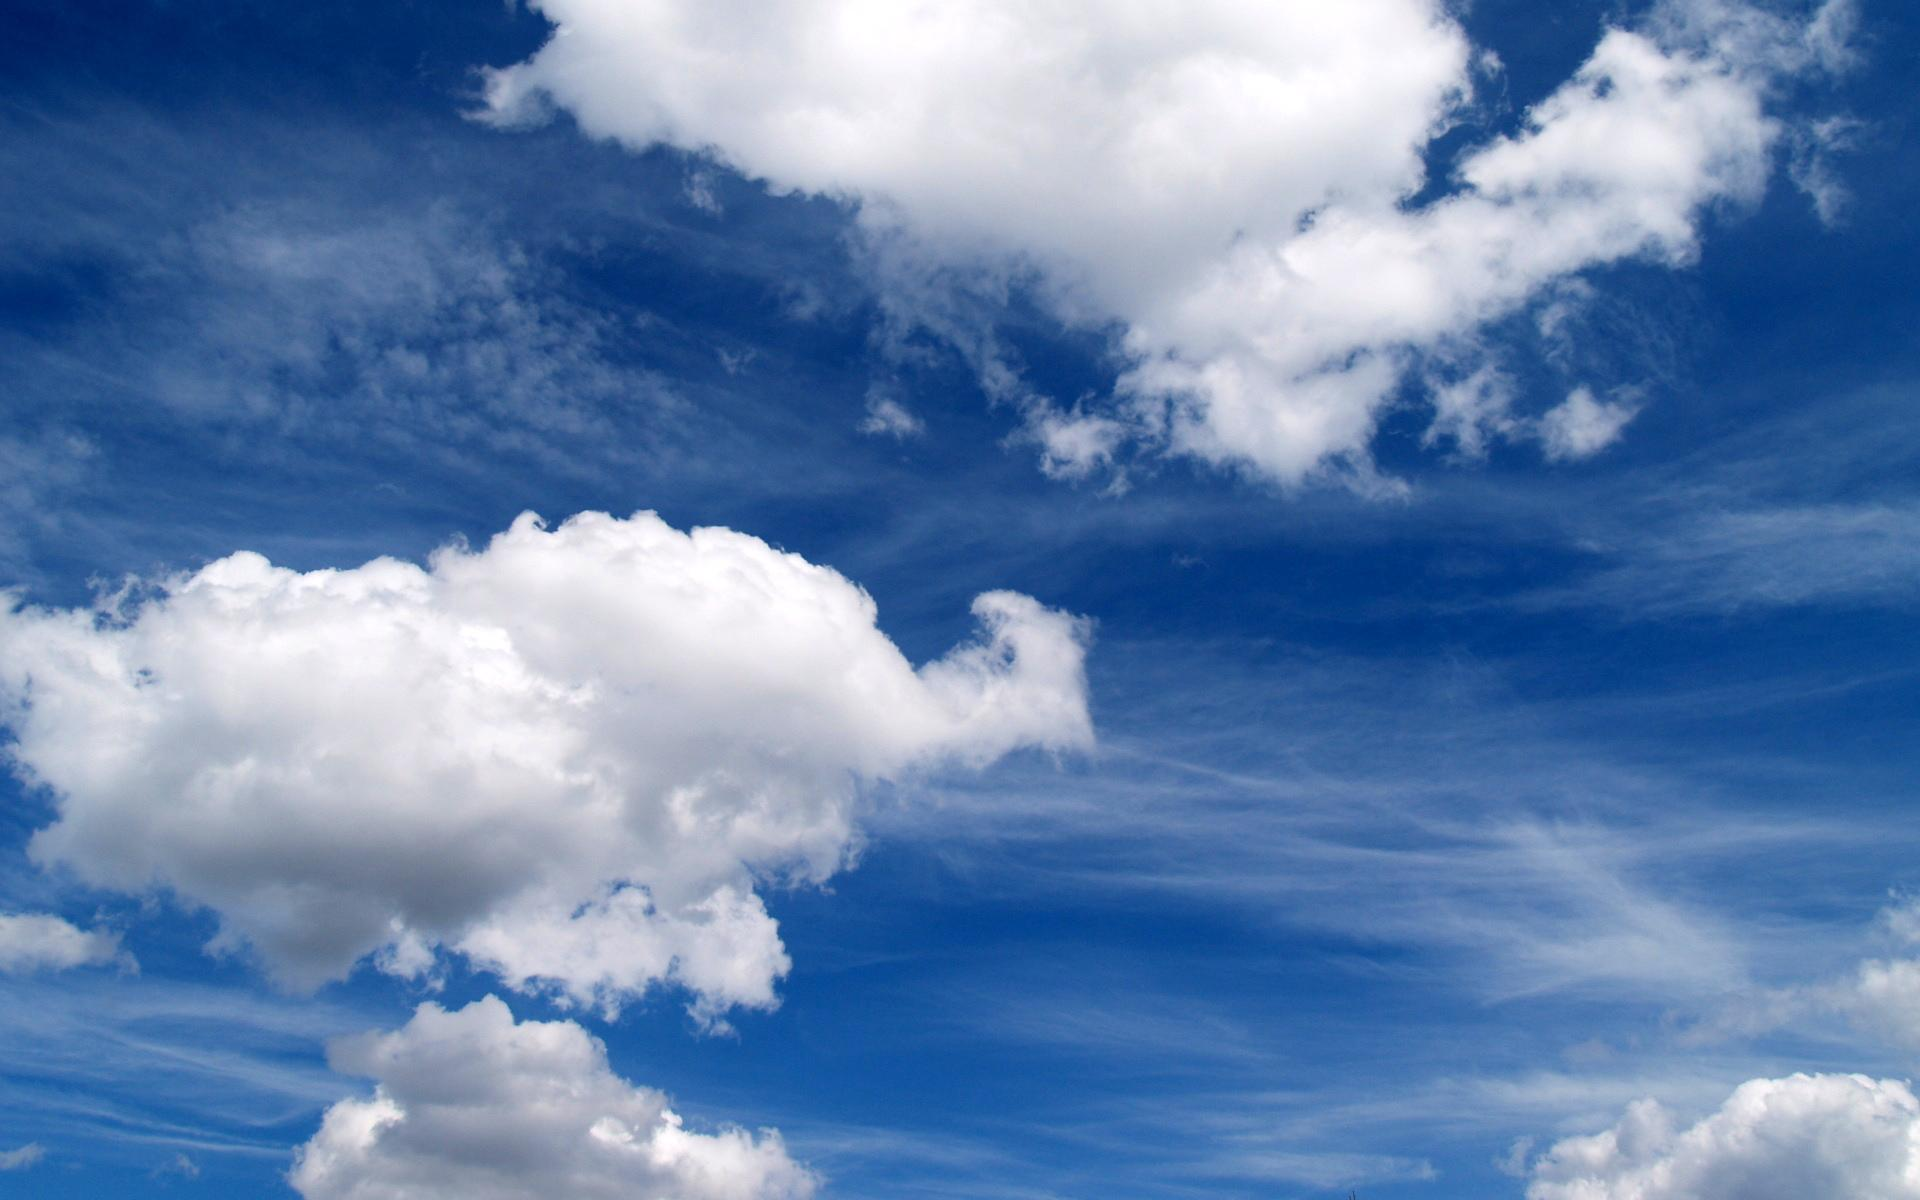 Download Dreamful Cloudy Sky High quality wallpaper 1920x1200